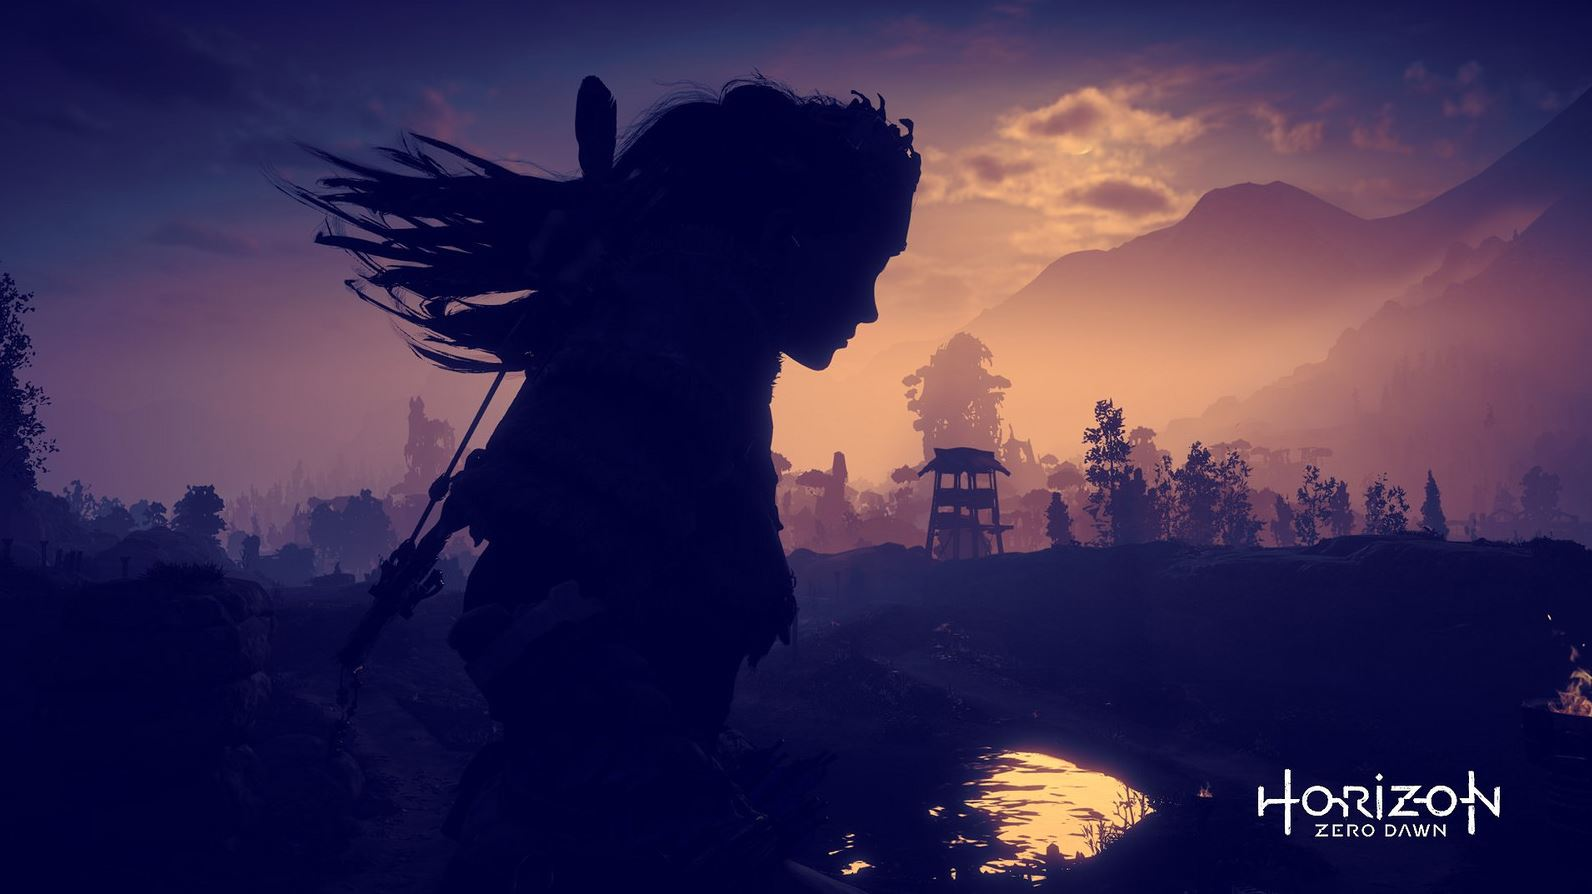 Horizon Zero Dawn Patch 1.20 Detailed, Comes With New Photo Mode Features